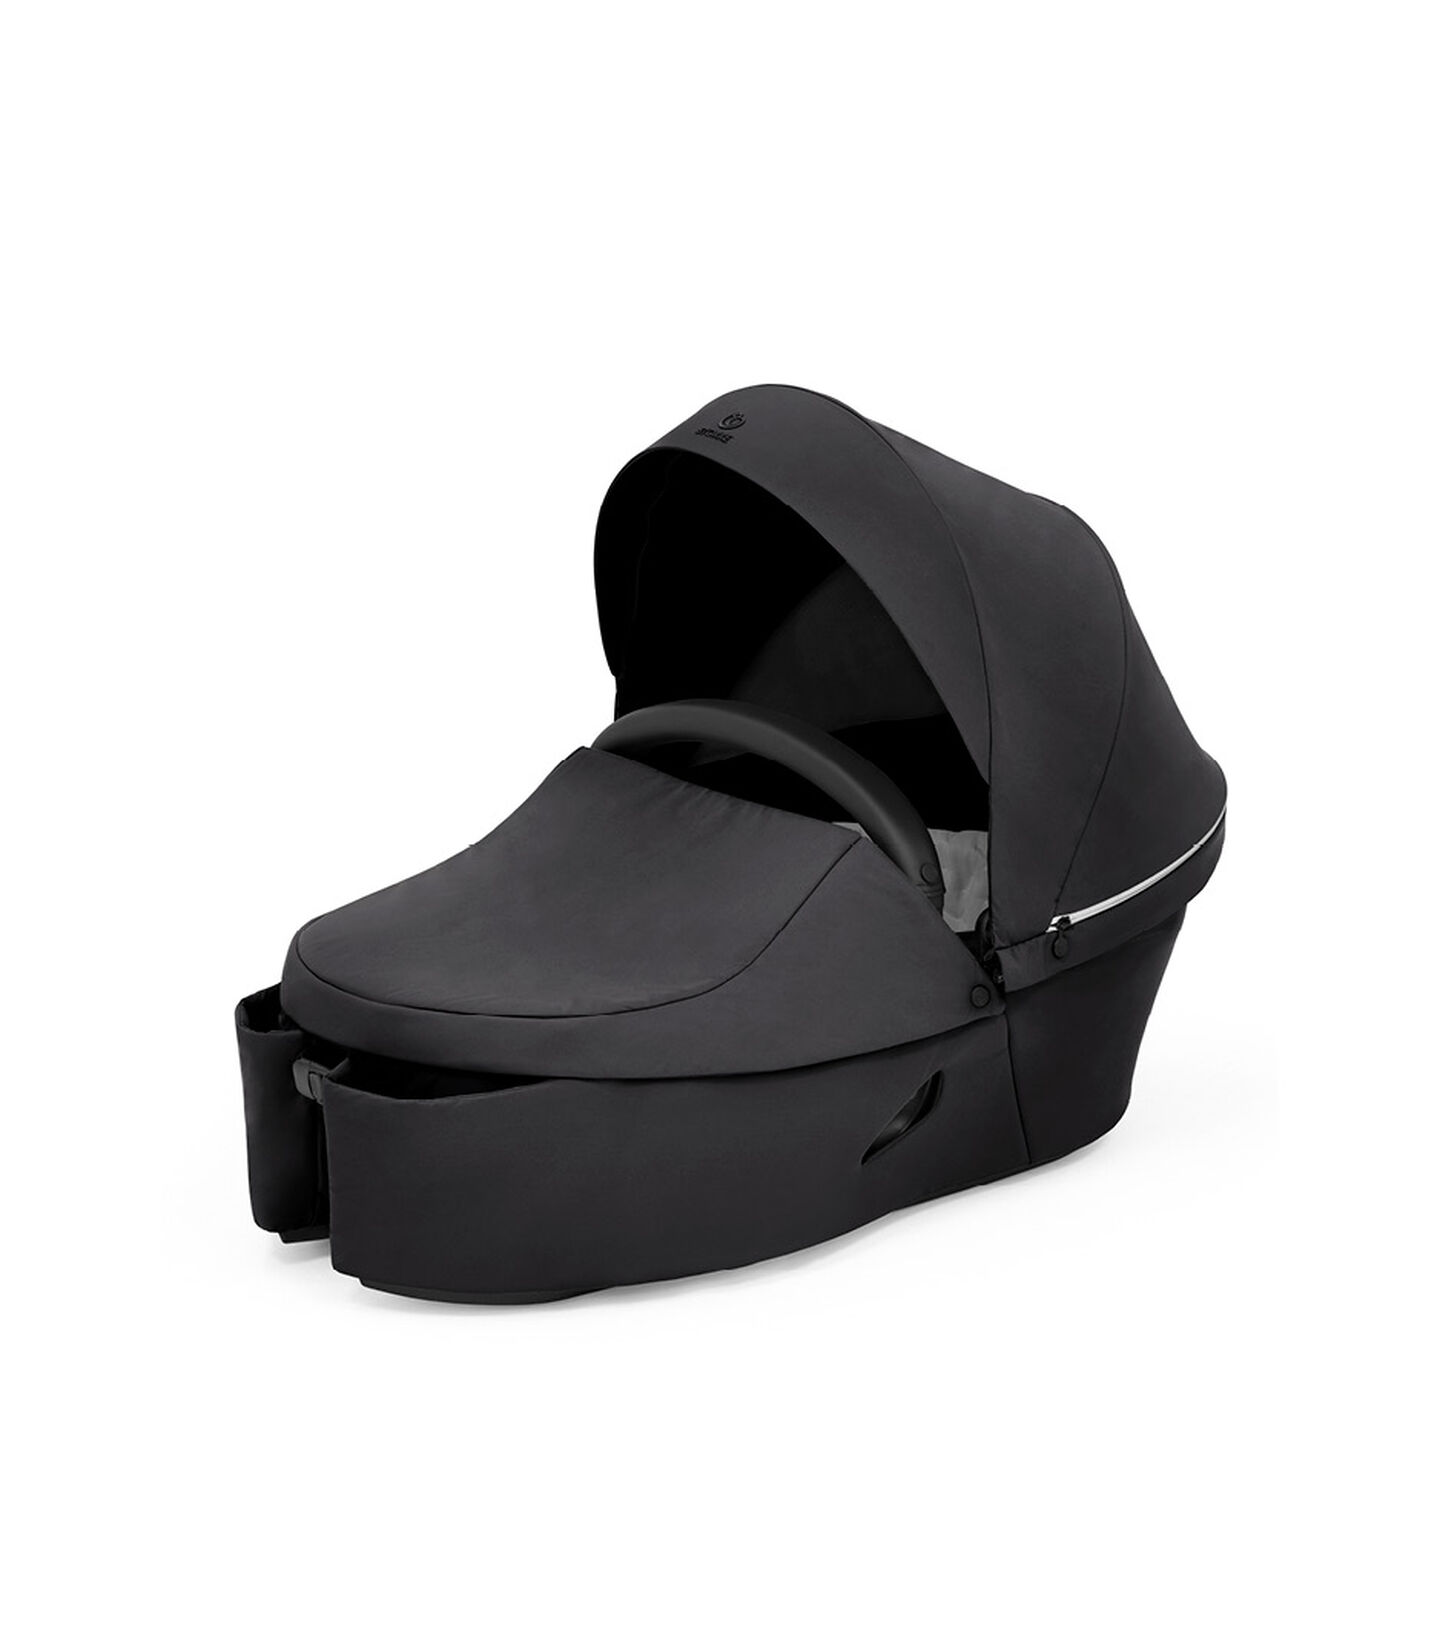 Stokke® Xplory® X Carry Cot Rich Black, Насыщенный черный, mainview view 2